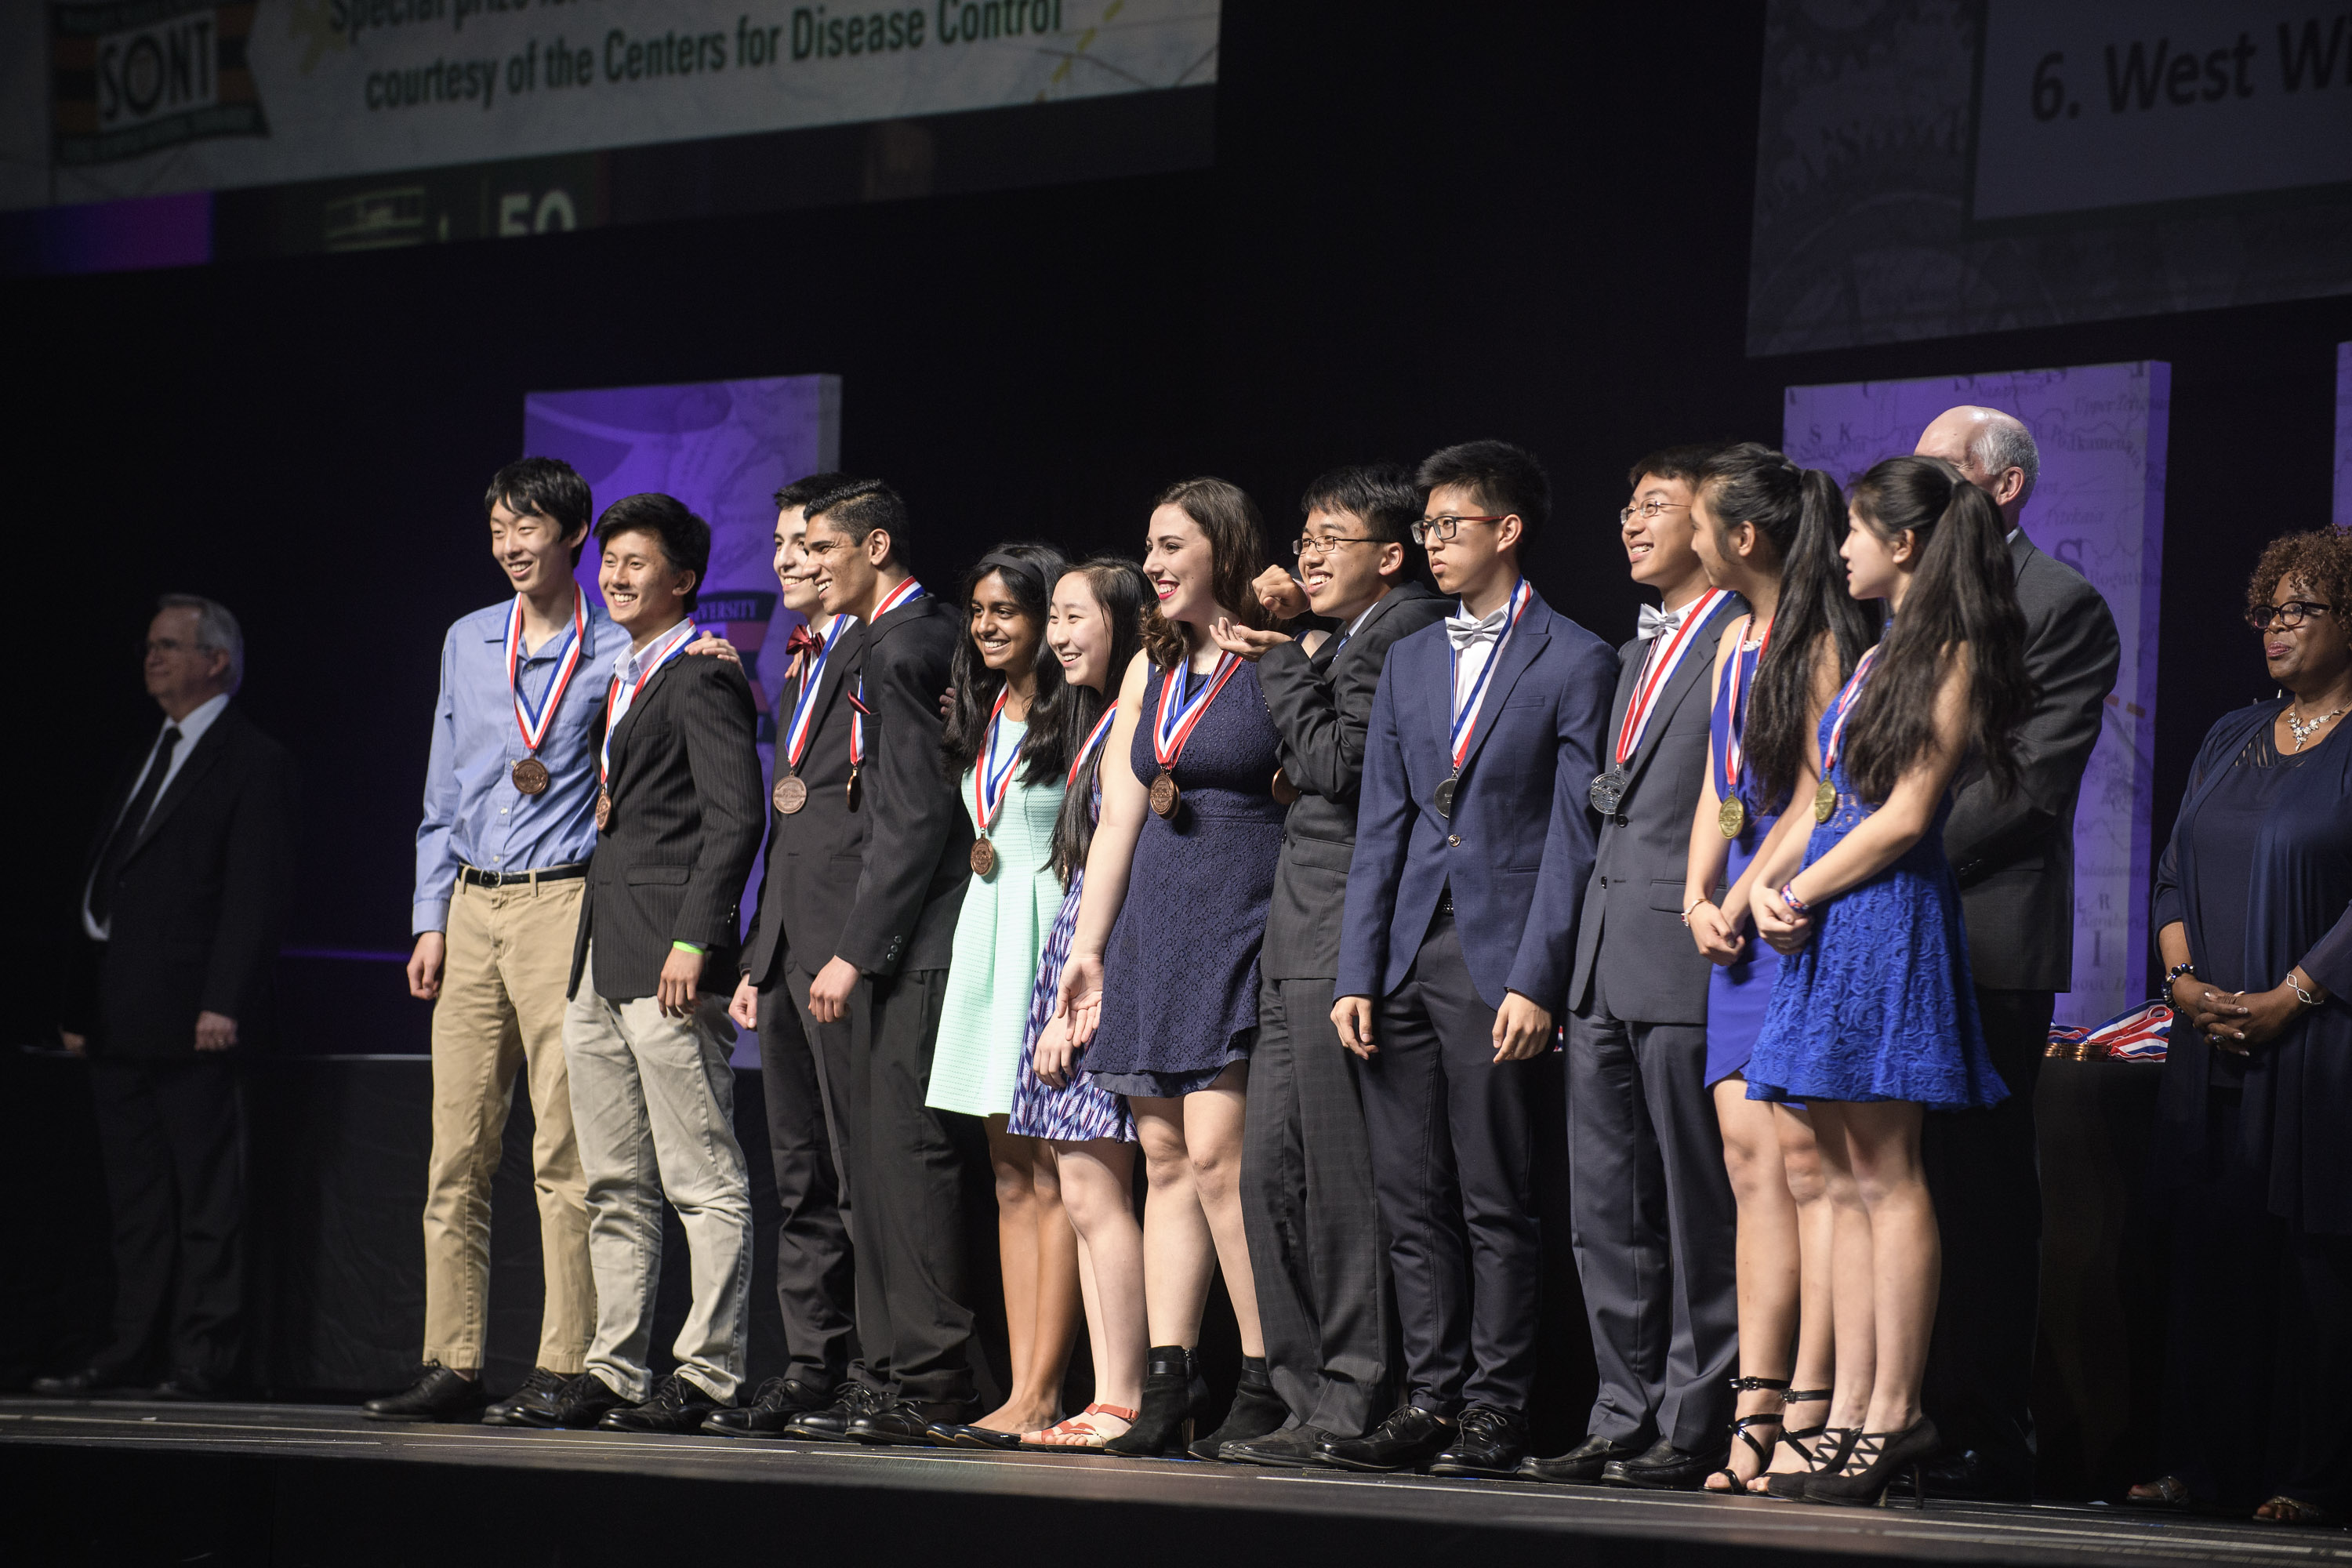 Students winning awards standing on stage